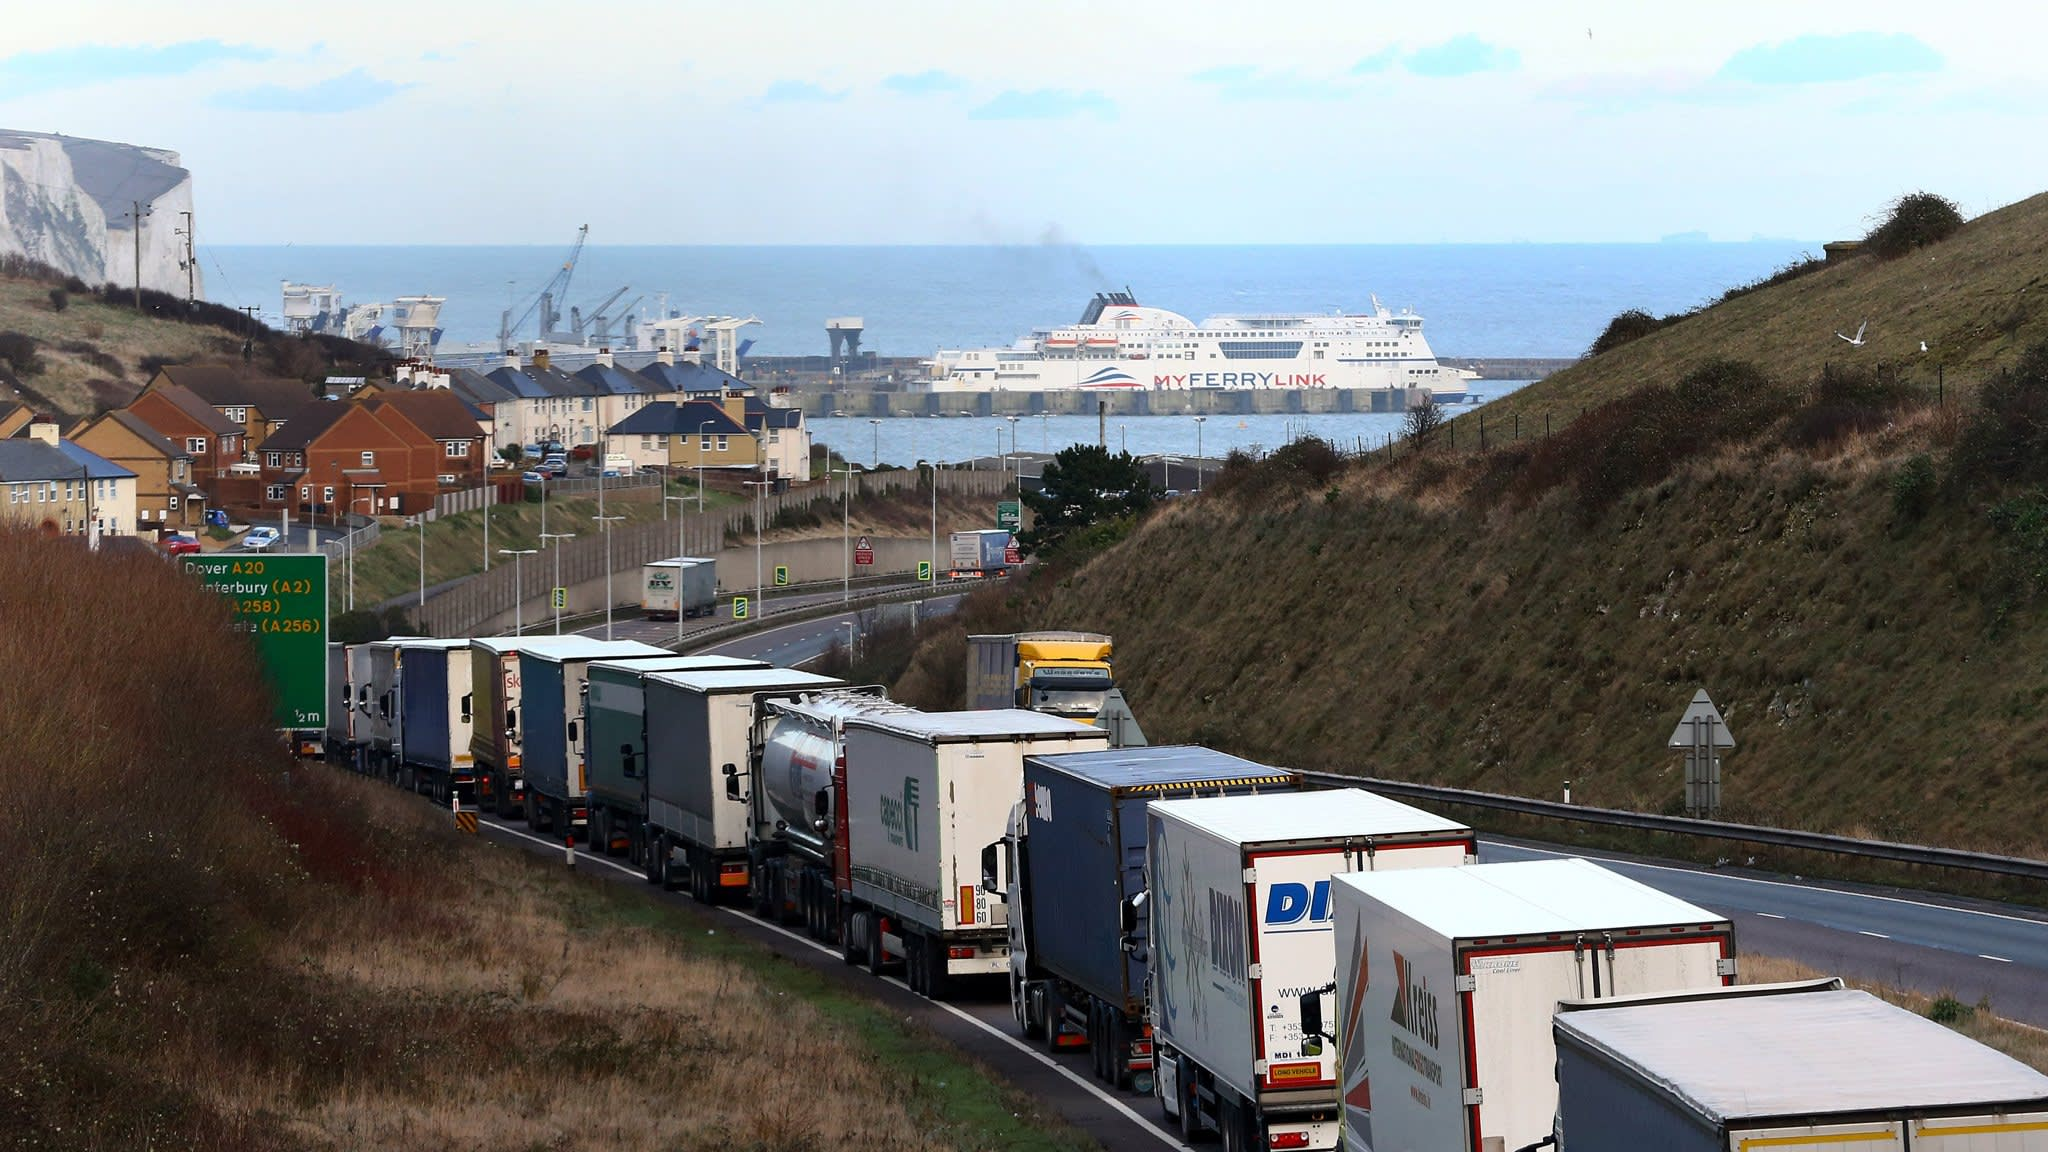 UK readies flotilla plan for supplies in no-deal Brexit | Financial Times